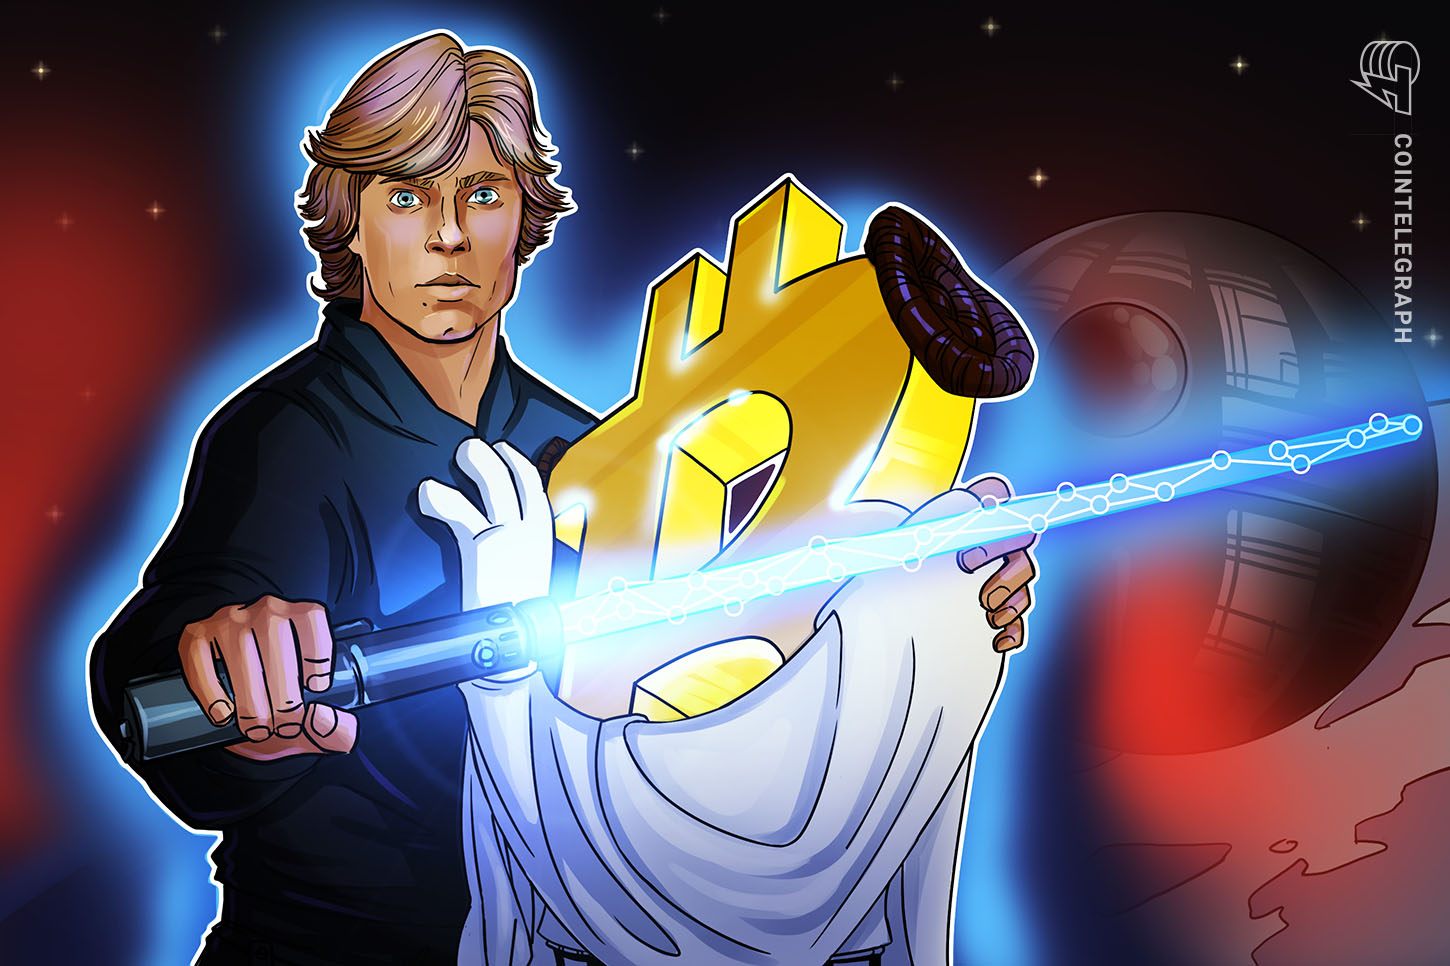 Backing the development of Bitcoin Core infrastructure for 'sound' money